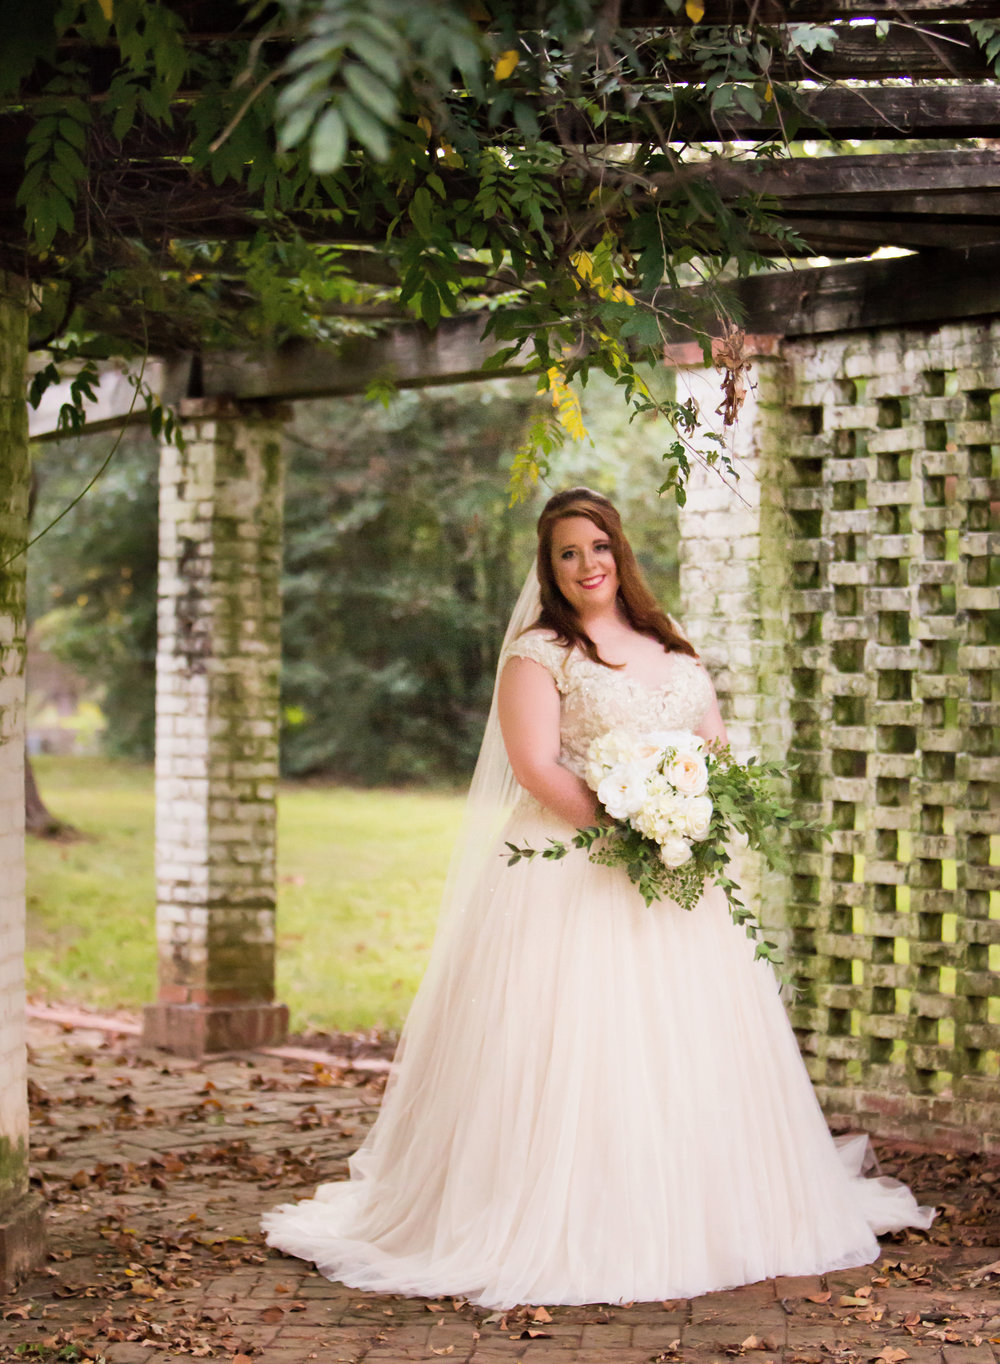 CedarCroft Plantation Wedding Venue